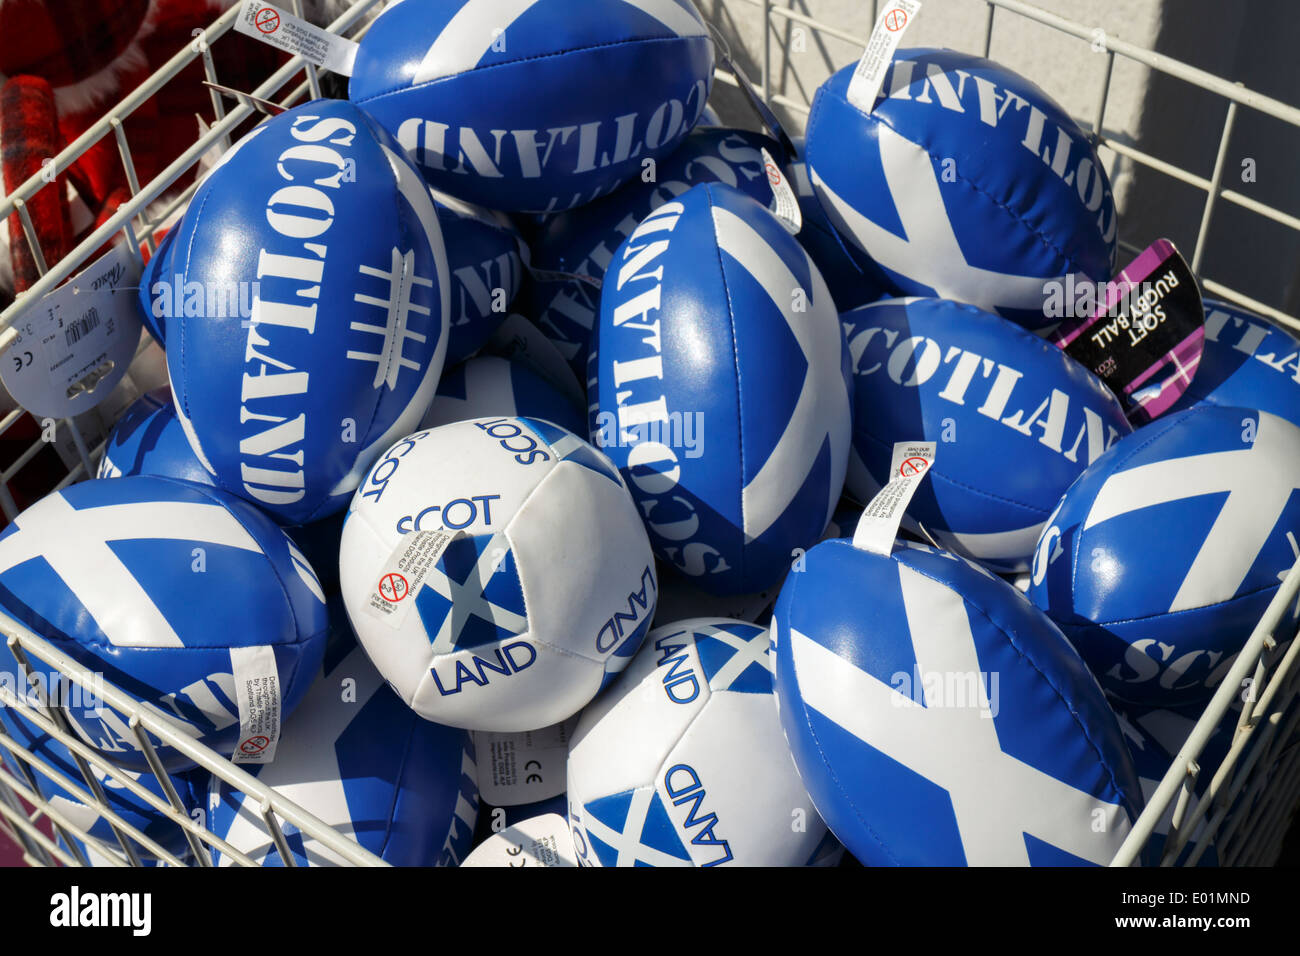 Novelty small Scotland rugby balls on display outside of a souvenir shop on the Royal Mile, Edinburgh. - Stock Image